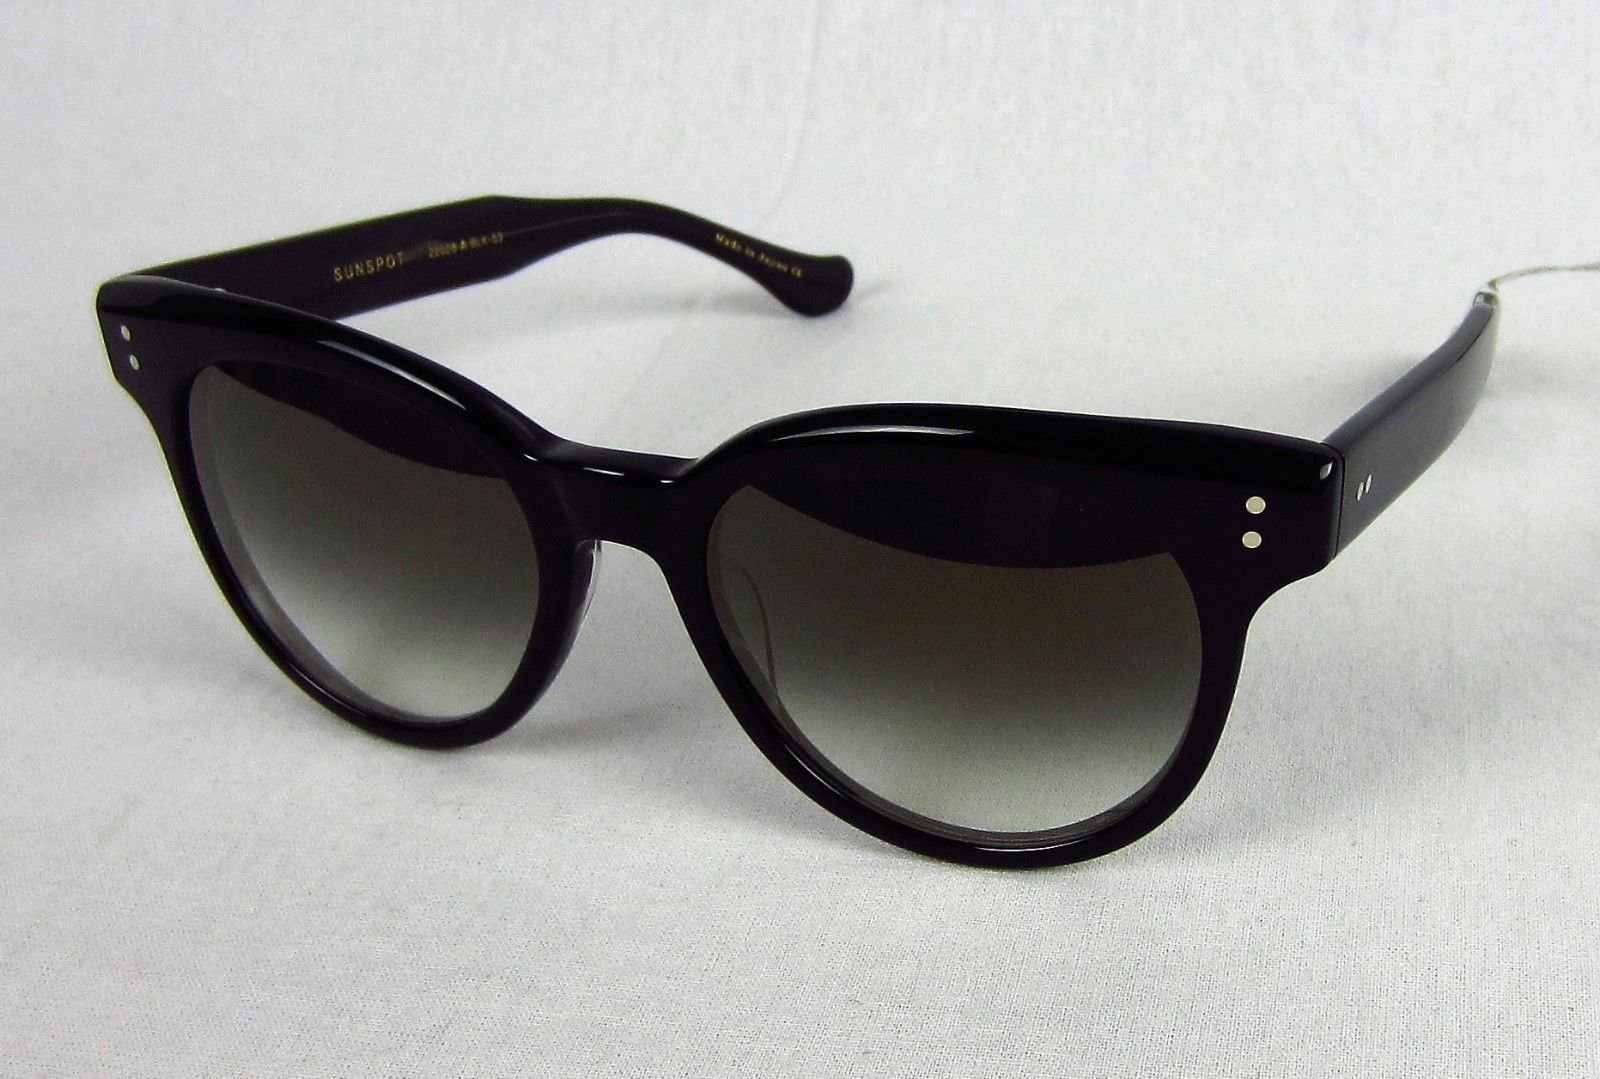 84d52b49bbb Dita Sunspot Oversized Round Sunglasses Black Frame Gray Gradient 22028 -A-BLK-53